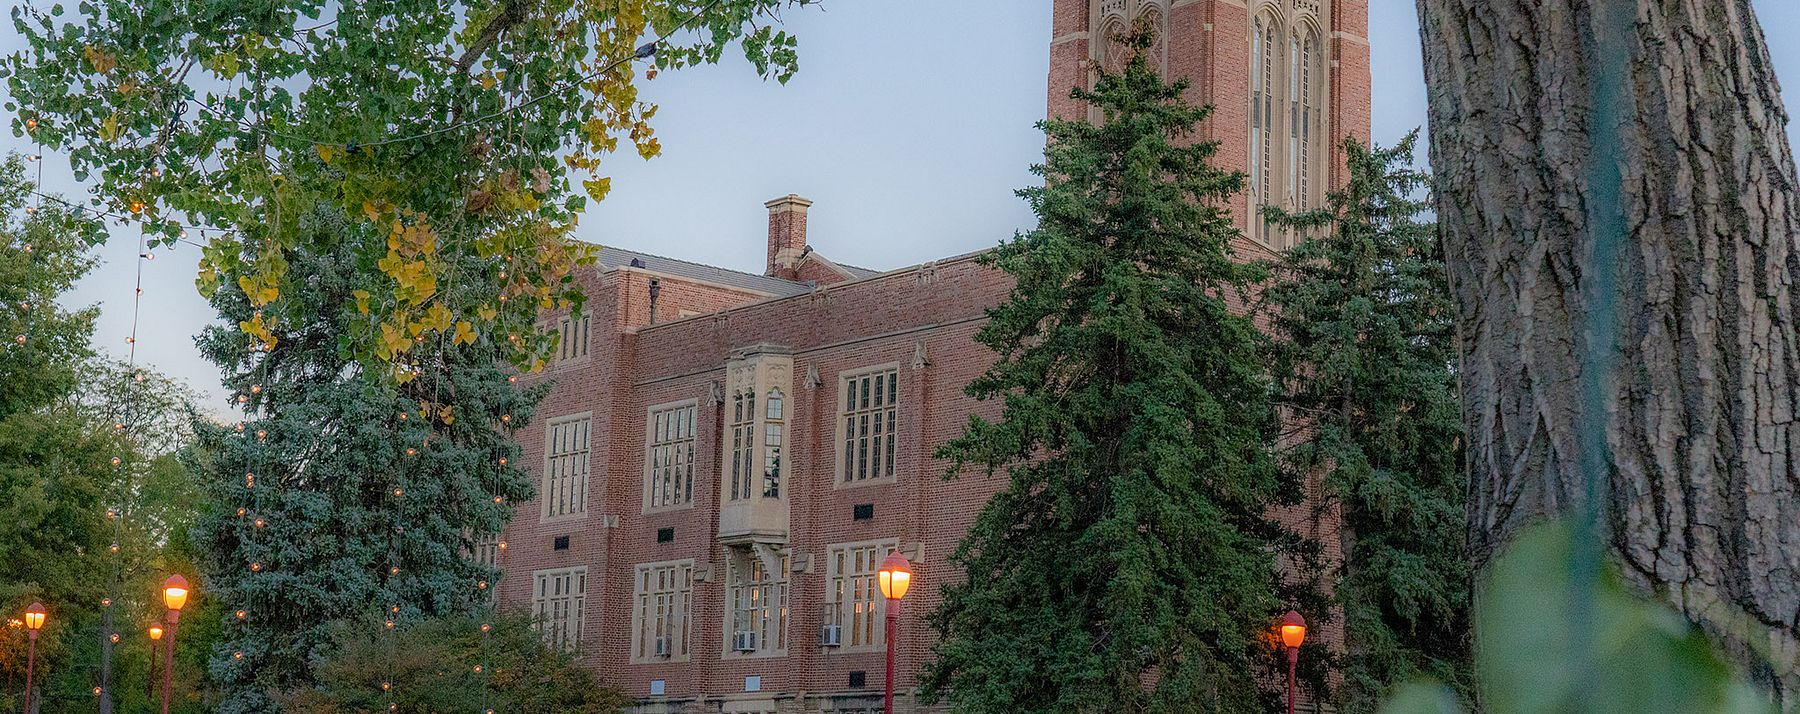 mary reed hall in evening